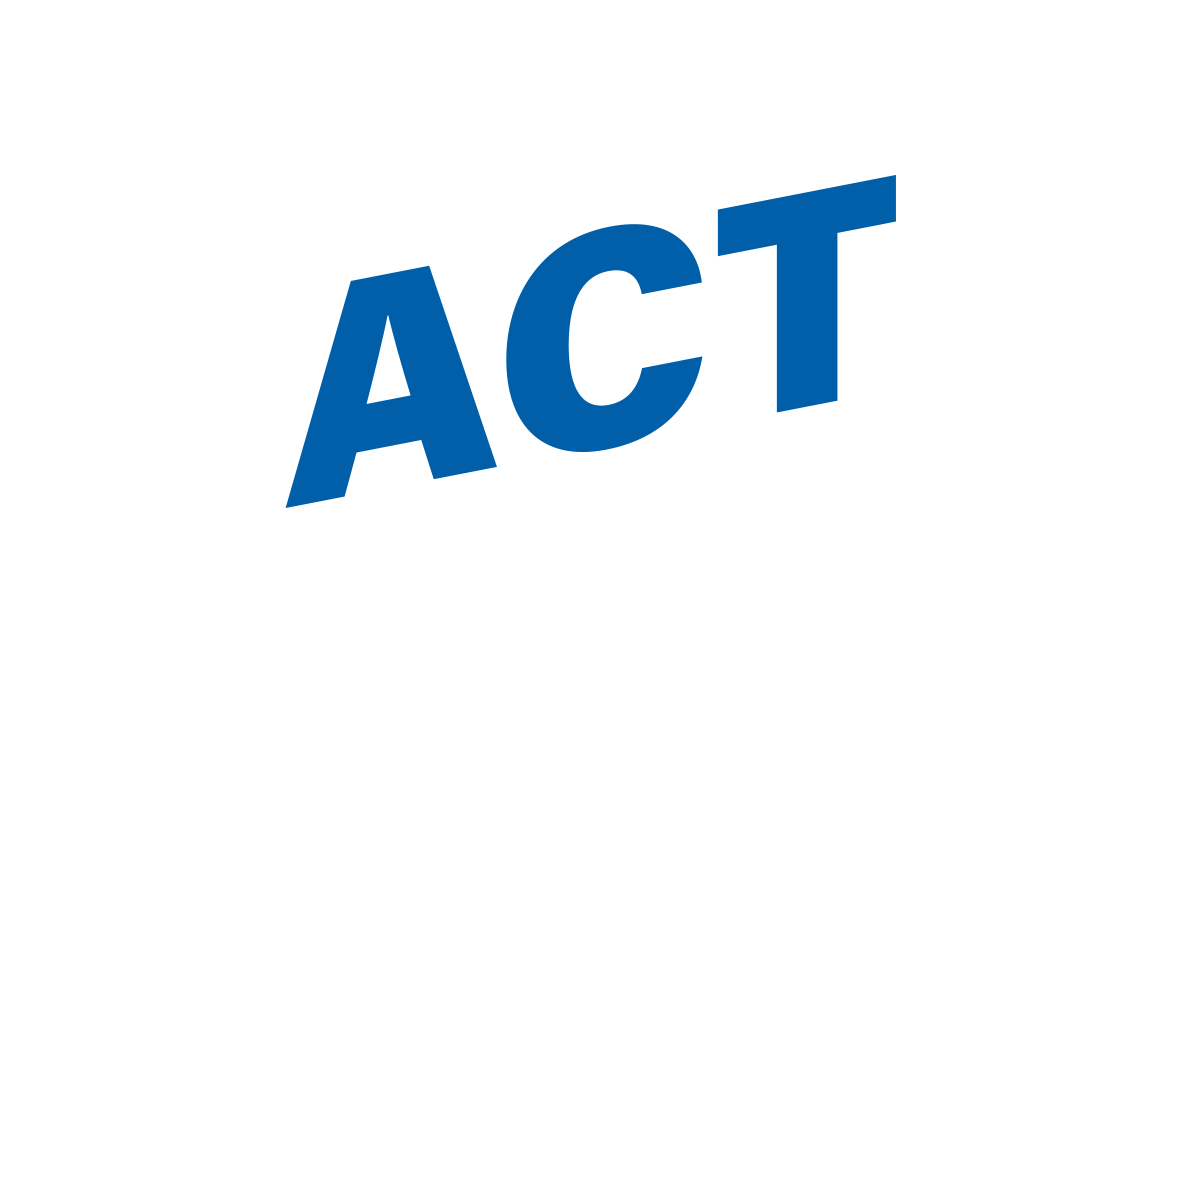 Act on NCDS logo blue negative